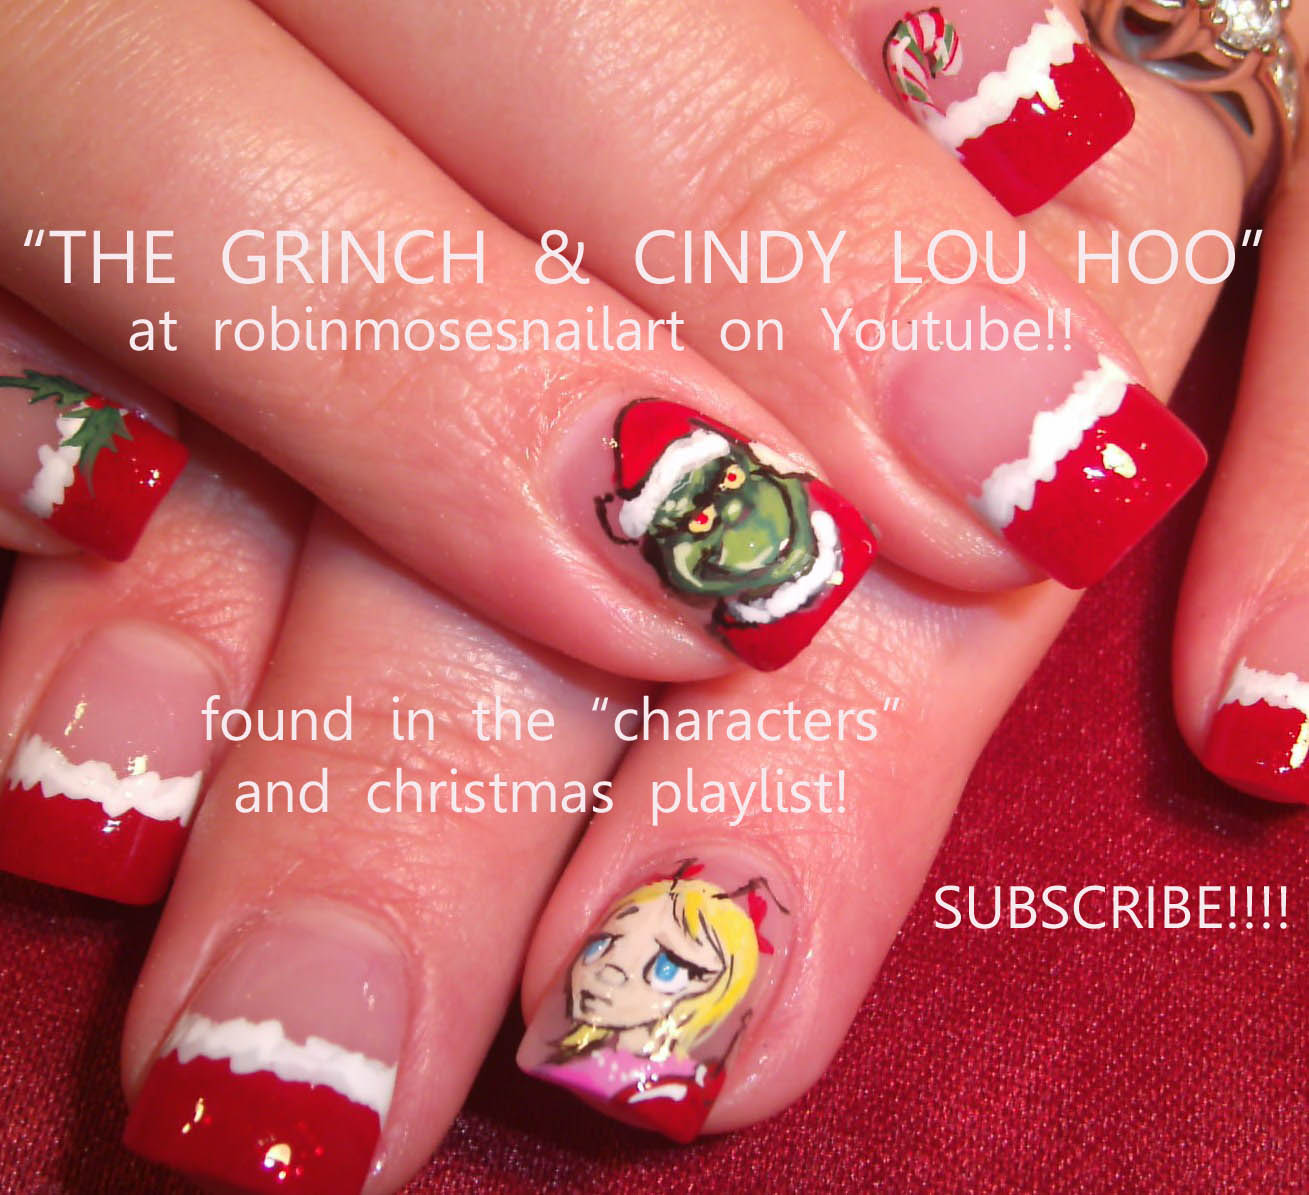 the grinch nails, the grinch nail art, christmas grinch nail, new